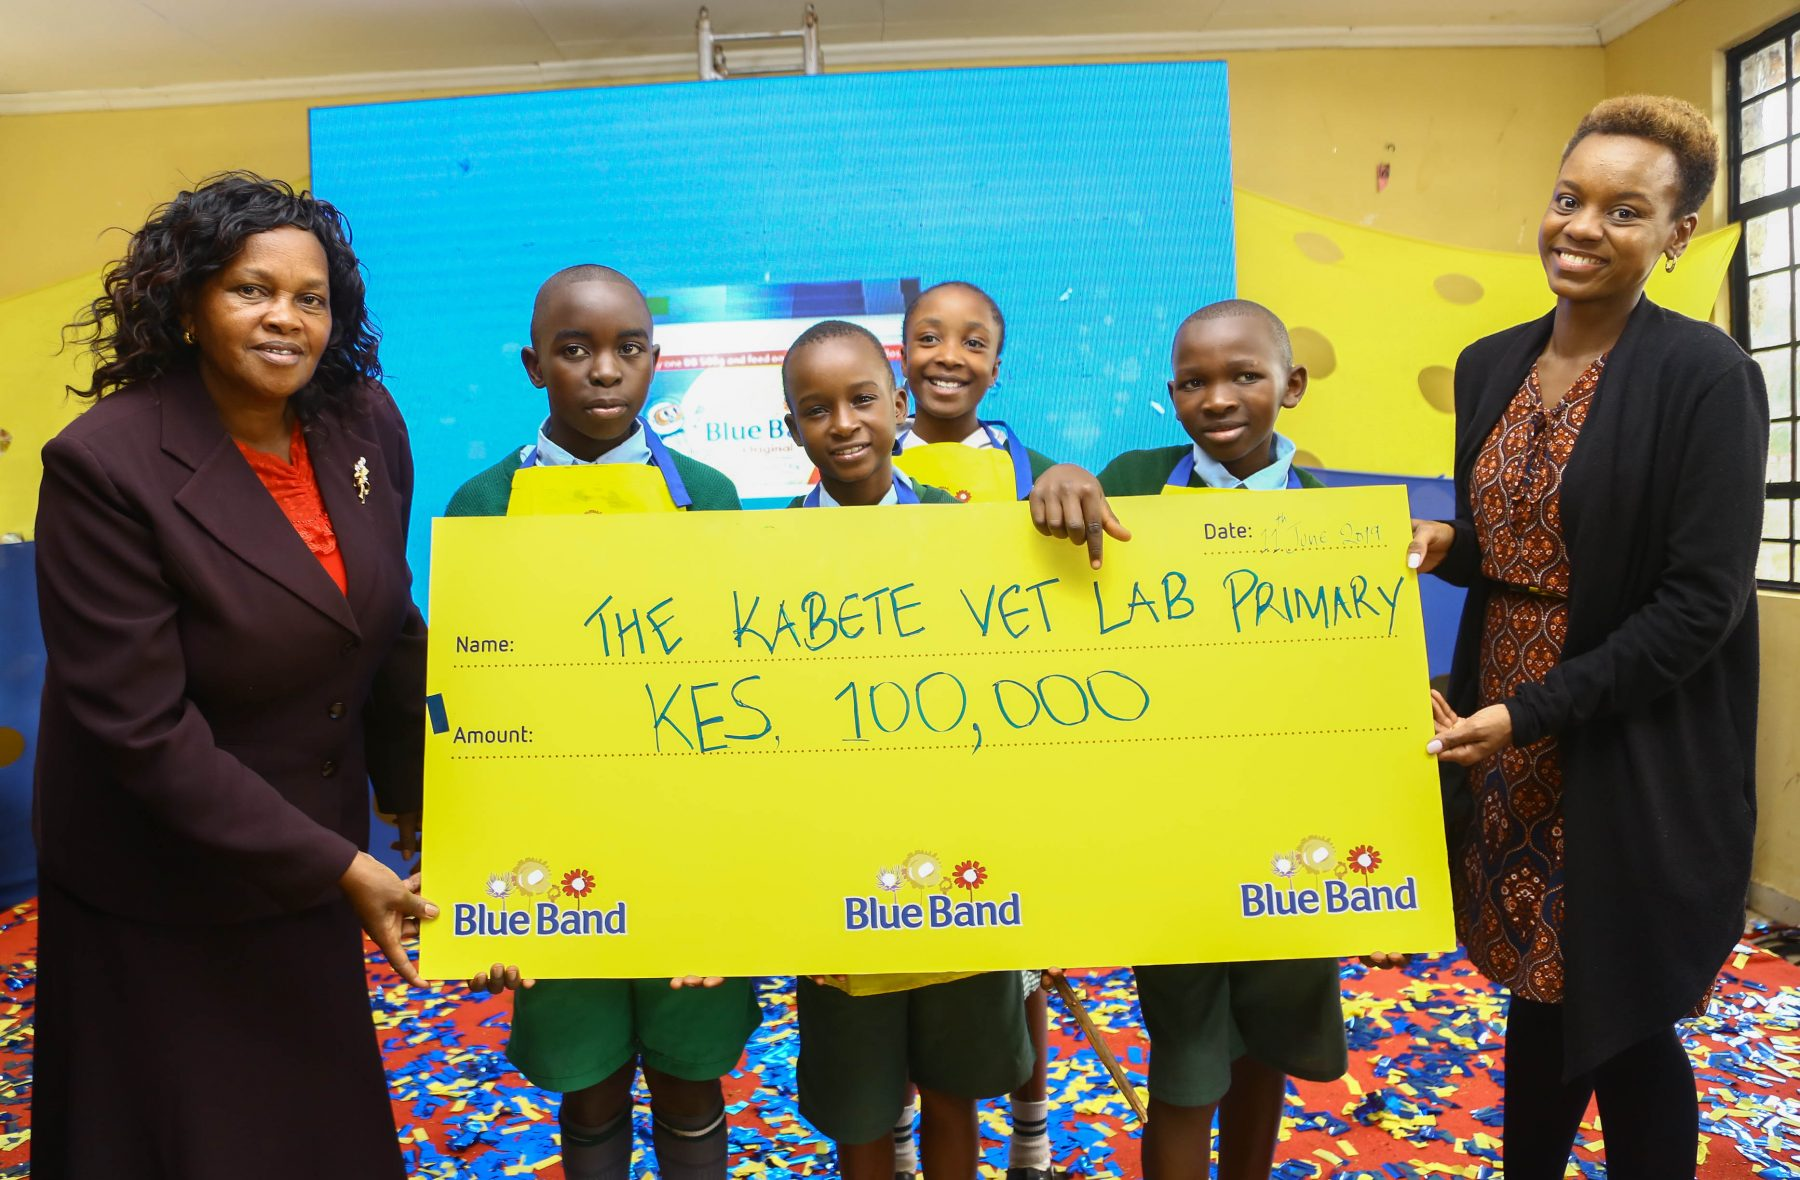 From left: Hellen Mugo, Head Teacher Kabete Vet lab primary School together with the students of Vet lab Primary School receive a dummy cheque worth Ksh. 100,000 from Jacky Mungai, Upfield Head of Marketing East and Southern Region during the launch of Blue Band Good Breakfast and Social Mission Campaign at Kabete Vet Lab Primary School.